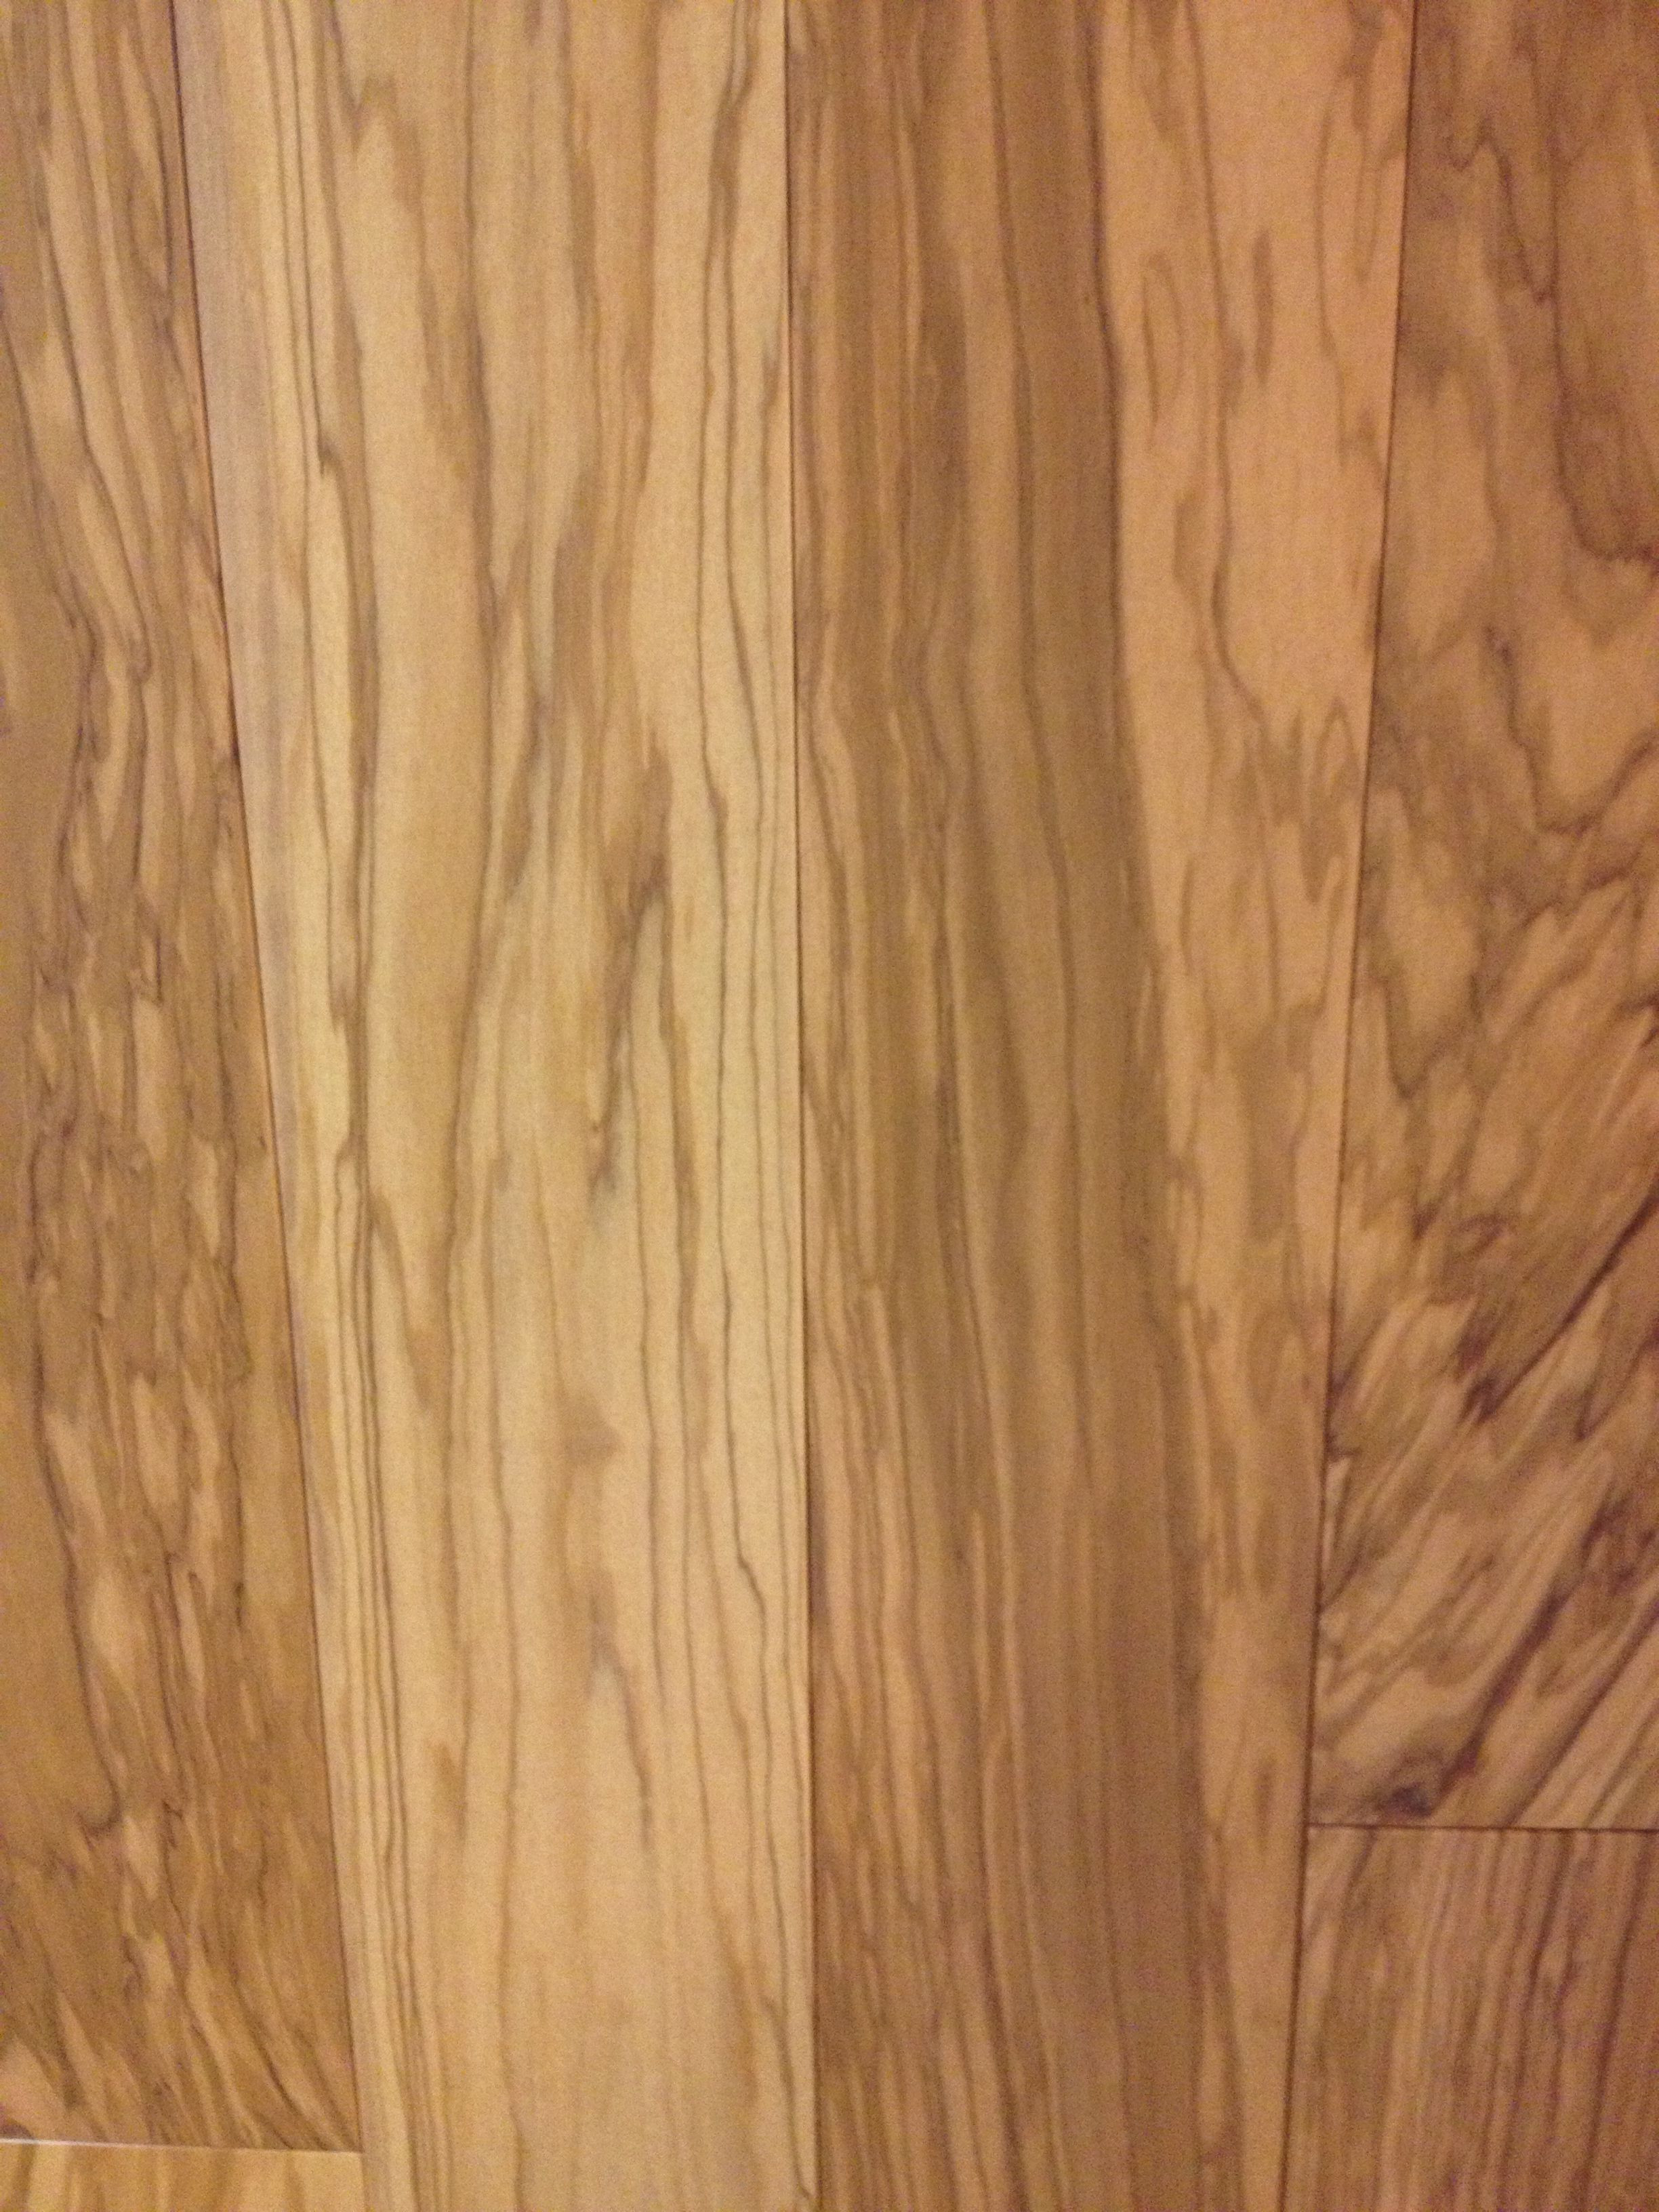 10 attractive Hardwood Floor Molding Types 2021 free download hardwood floor molding types of tuscany olive wood floor there is nothing quite like olive wood for pertaining to tuscany olive wood floor there is nothing quite like olive wood for turning